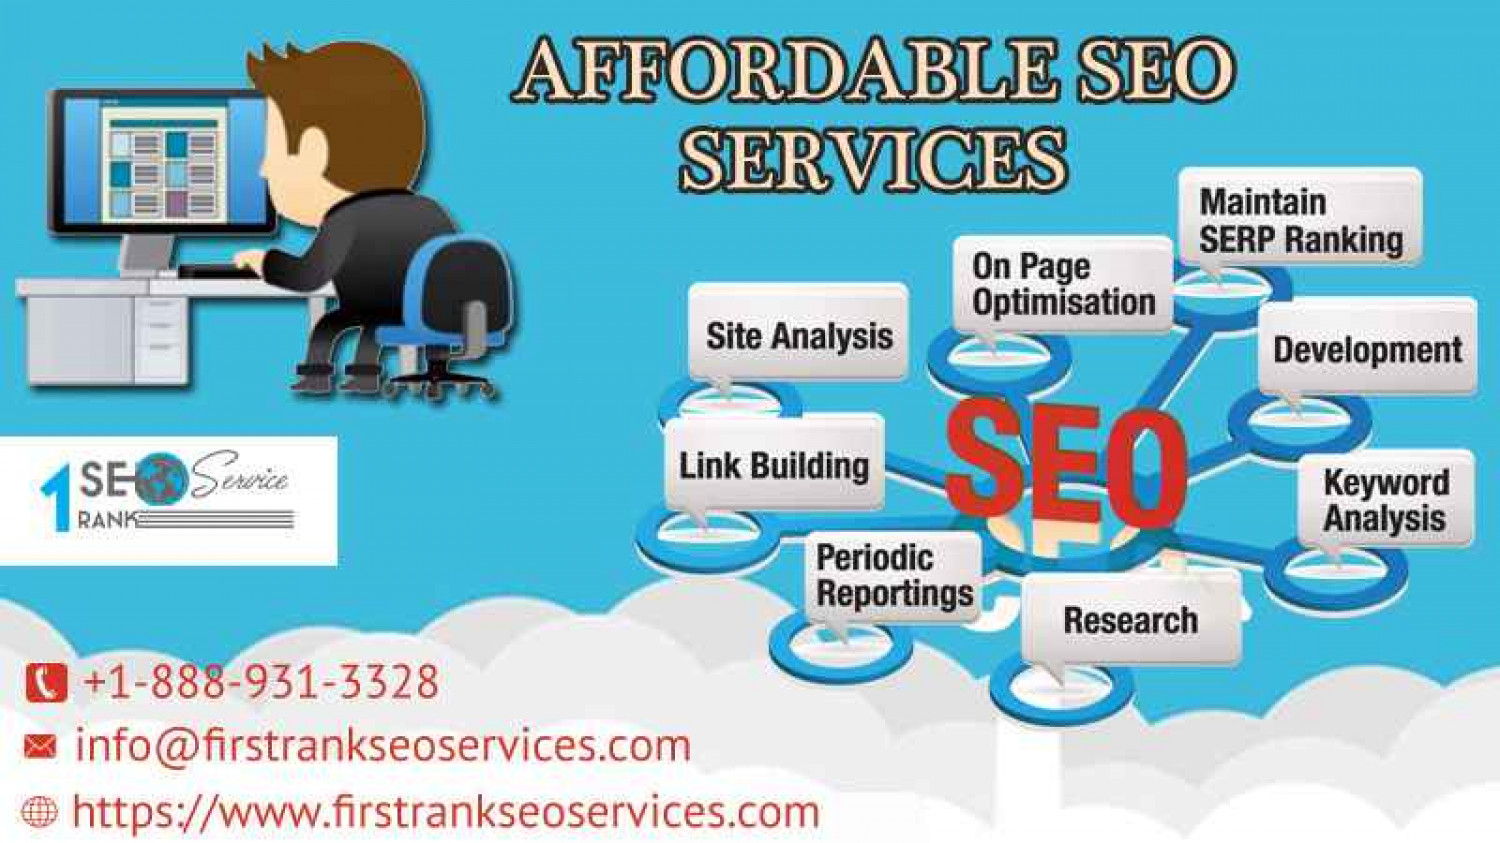 Affordable SEO services improve better user experience  Infographic